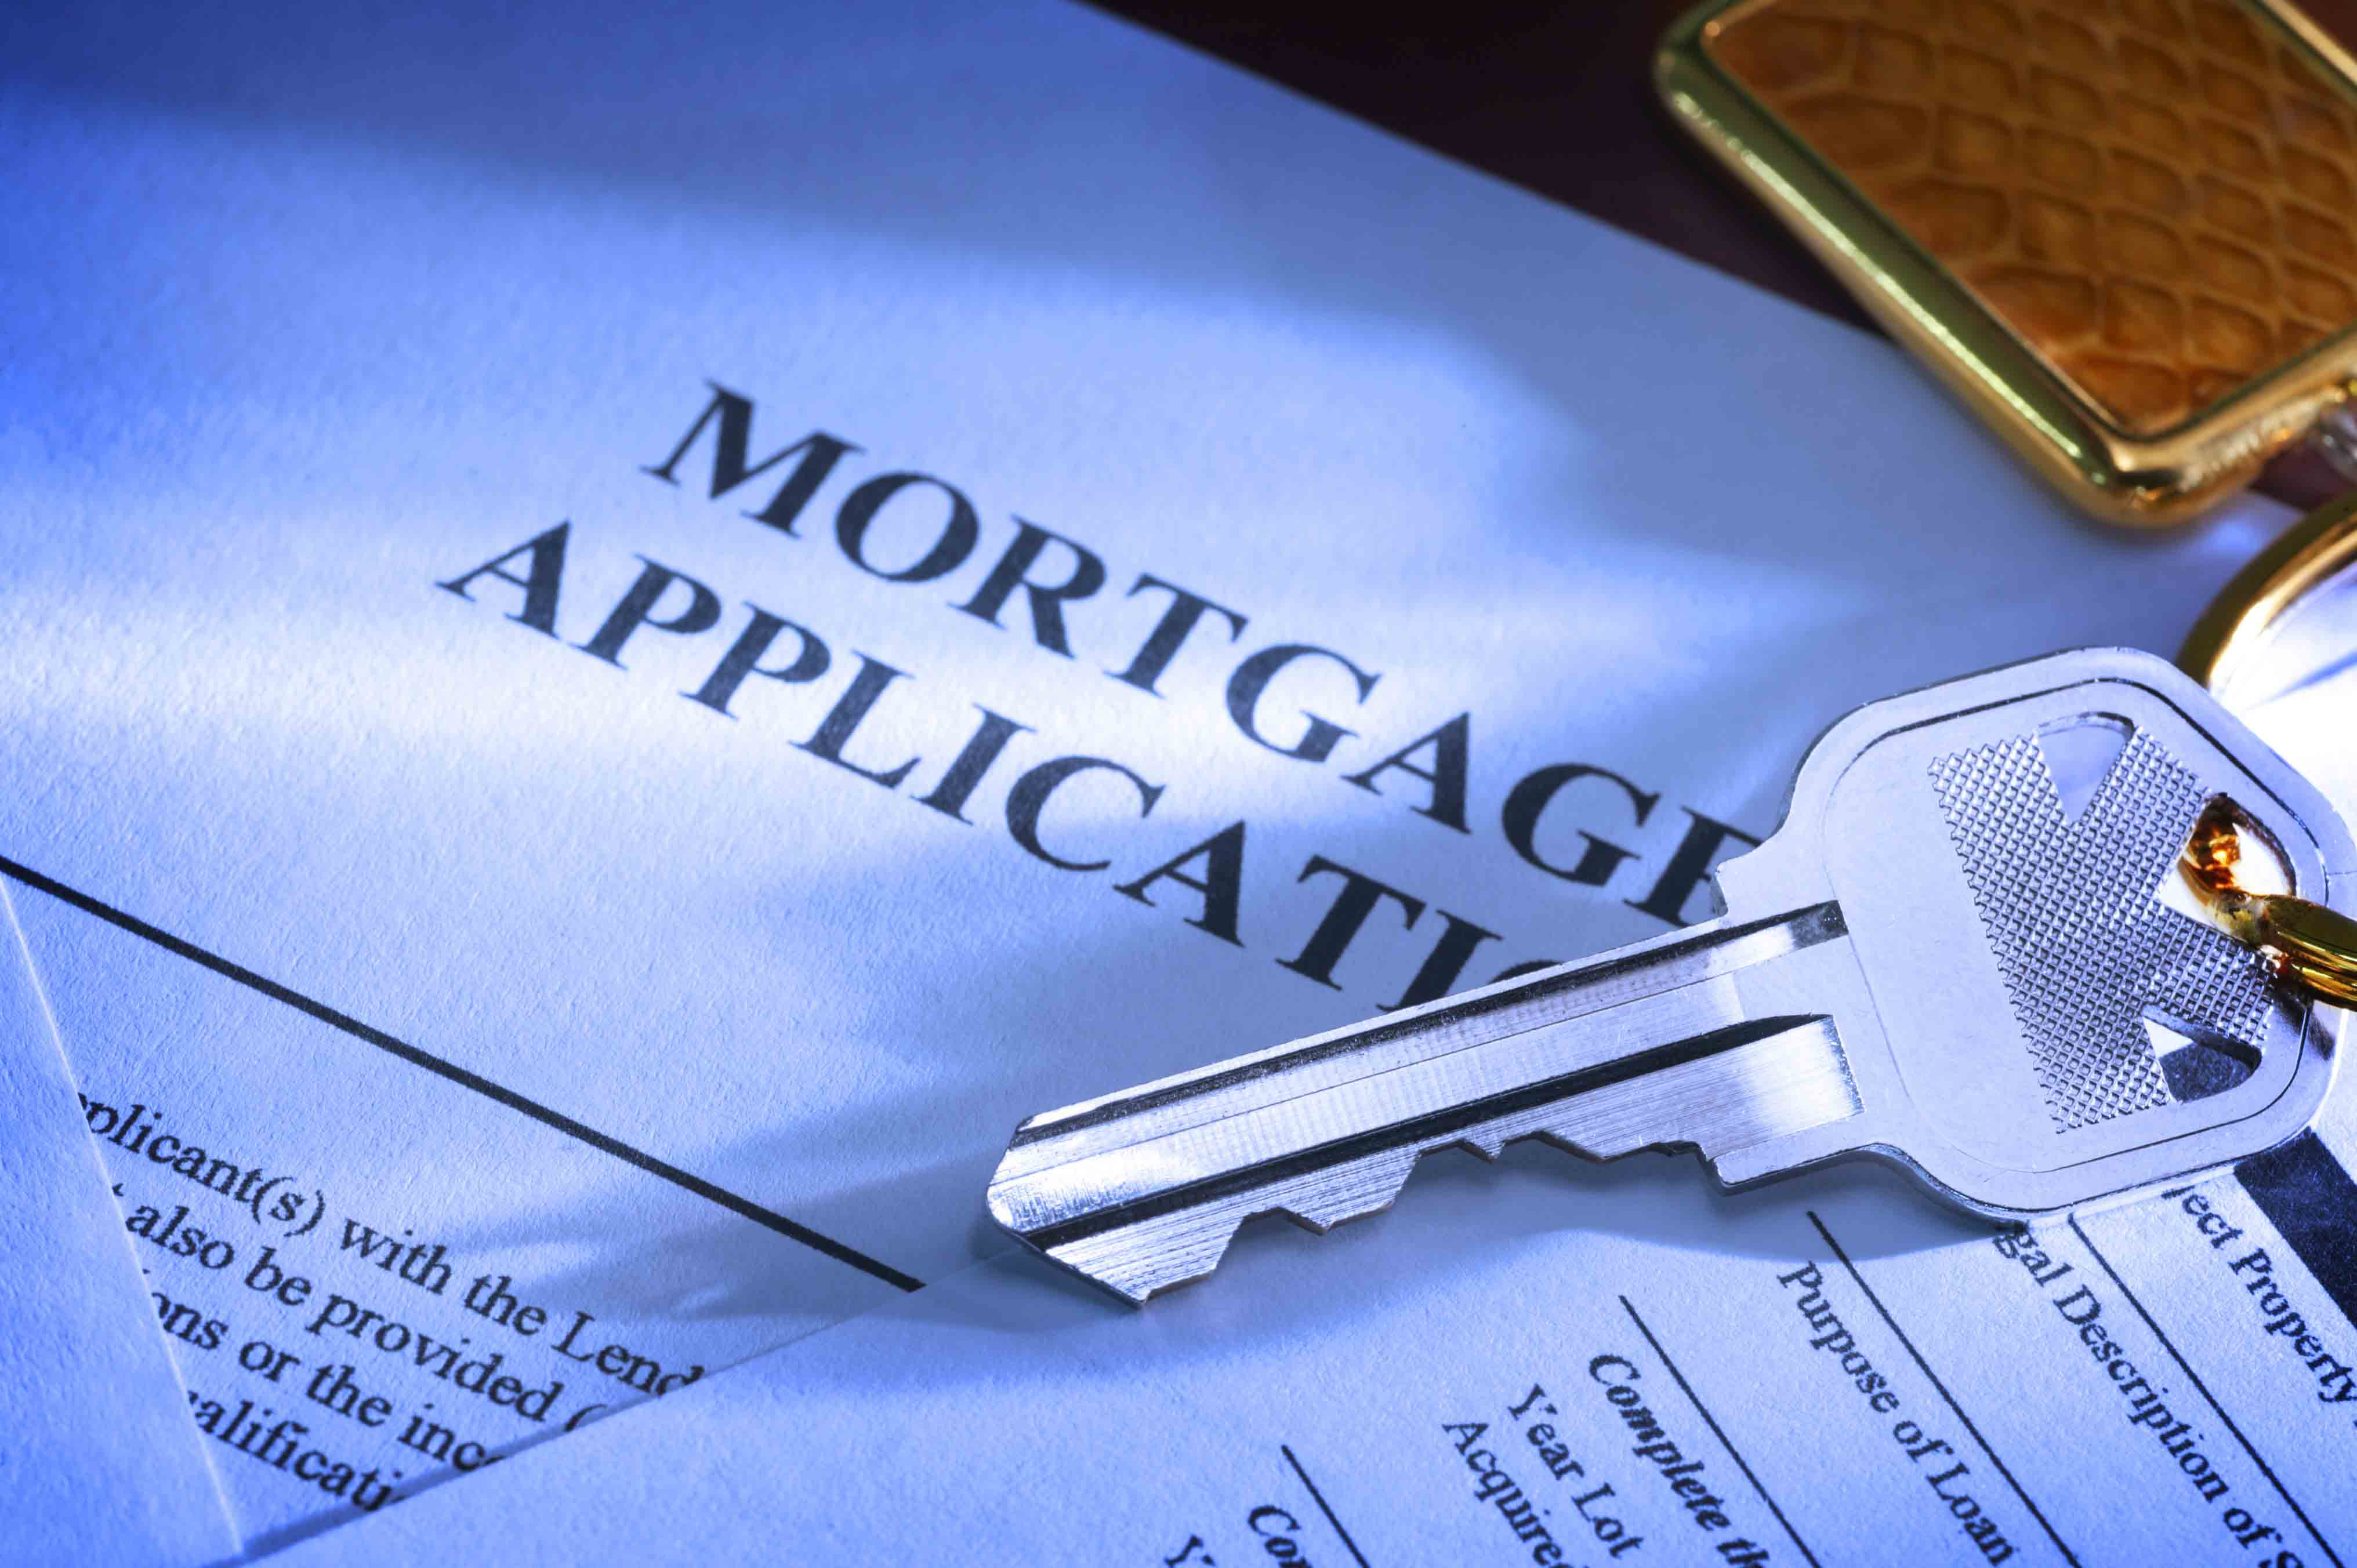 Loan Modification Help Center - Are All Loan Modification Companies The Same?